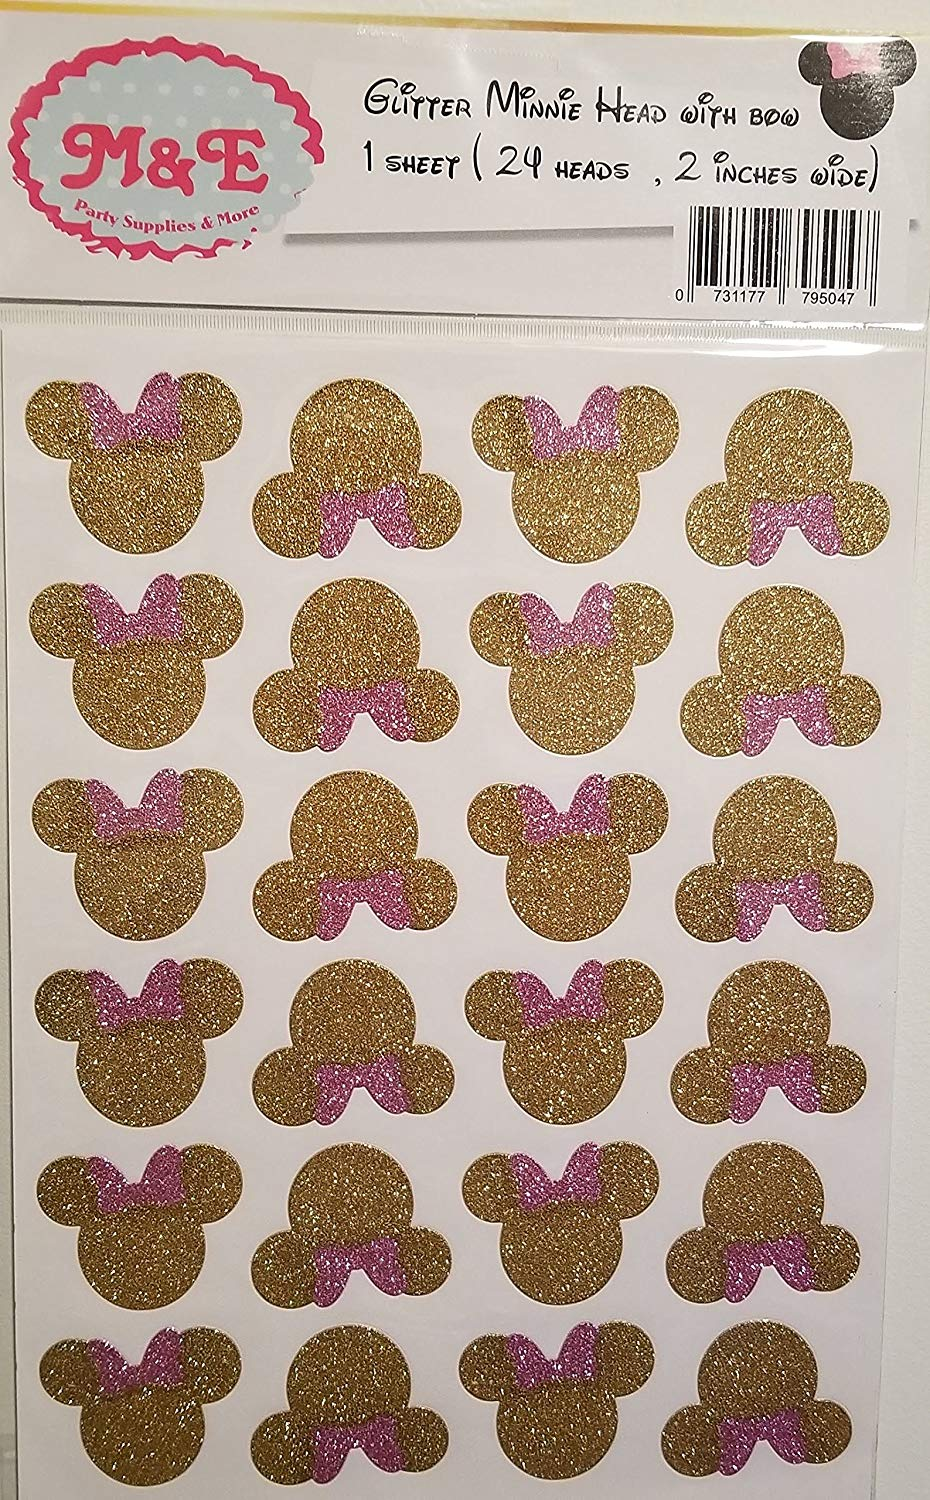 Glitter Gold & Pink Minnie Head and Bow Stickers for Minnie Mouse Birthday Party Decoration, Mickey Or Minnie (1 Sheet)(Total 24 Heads 2 inches Wide Each), Minnie Birthday, (Minnie Head)